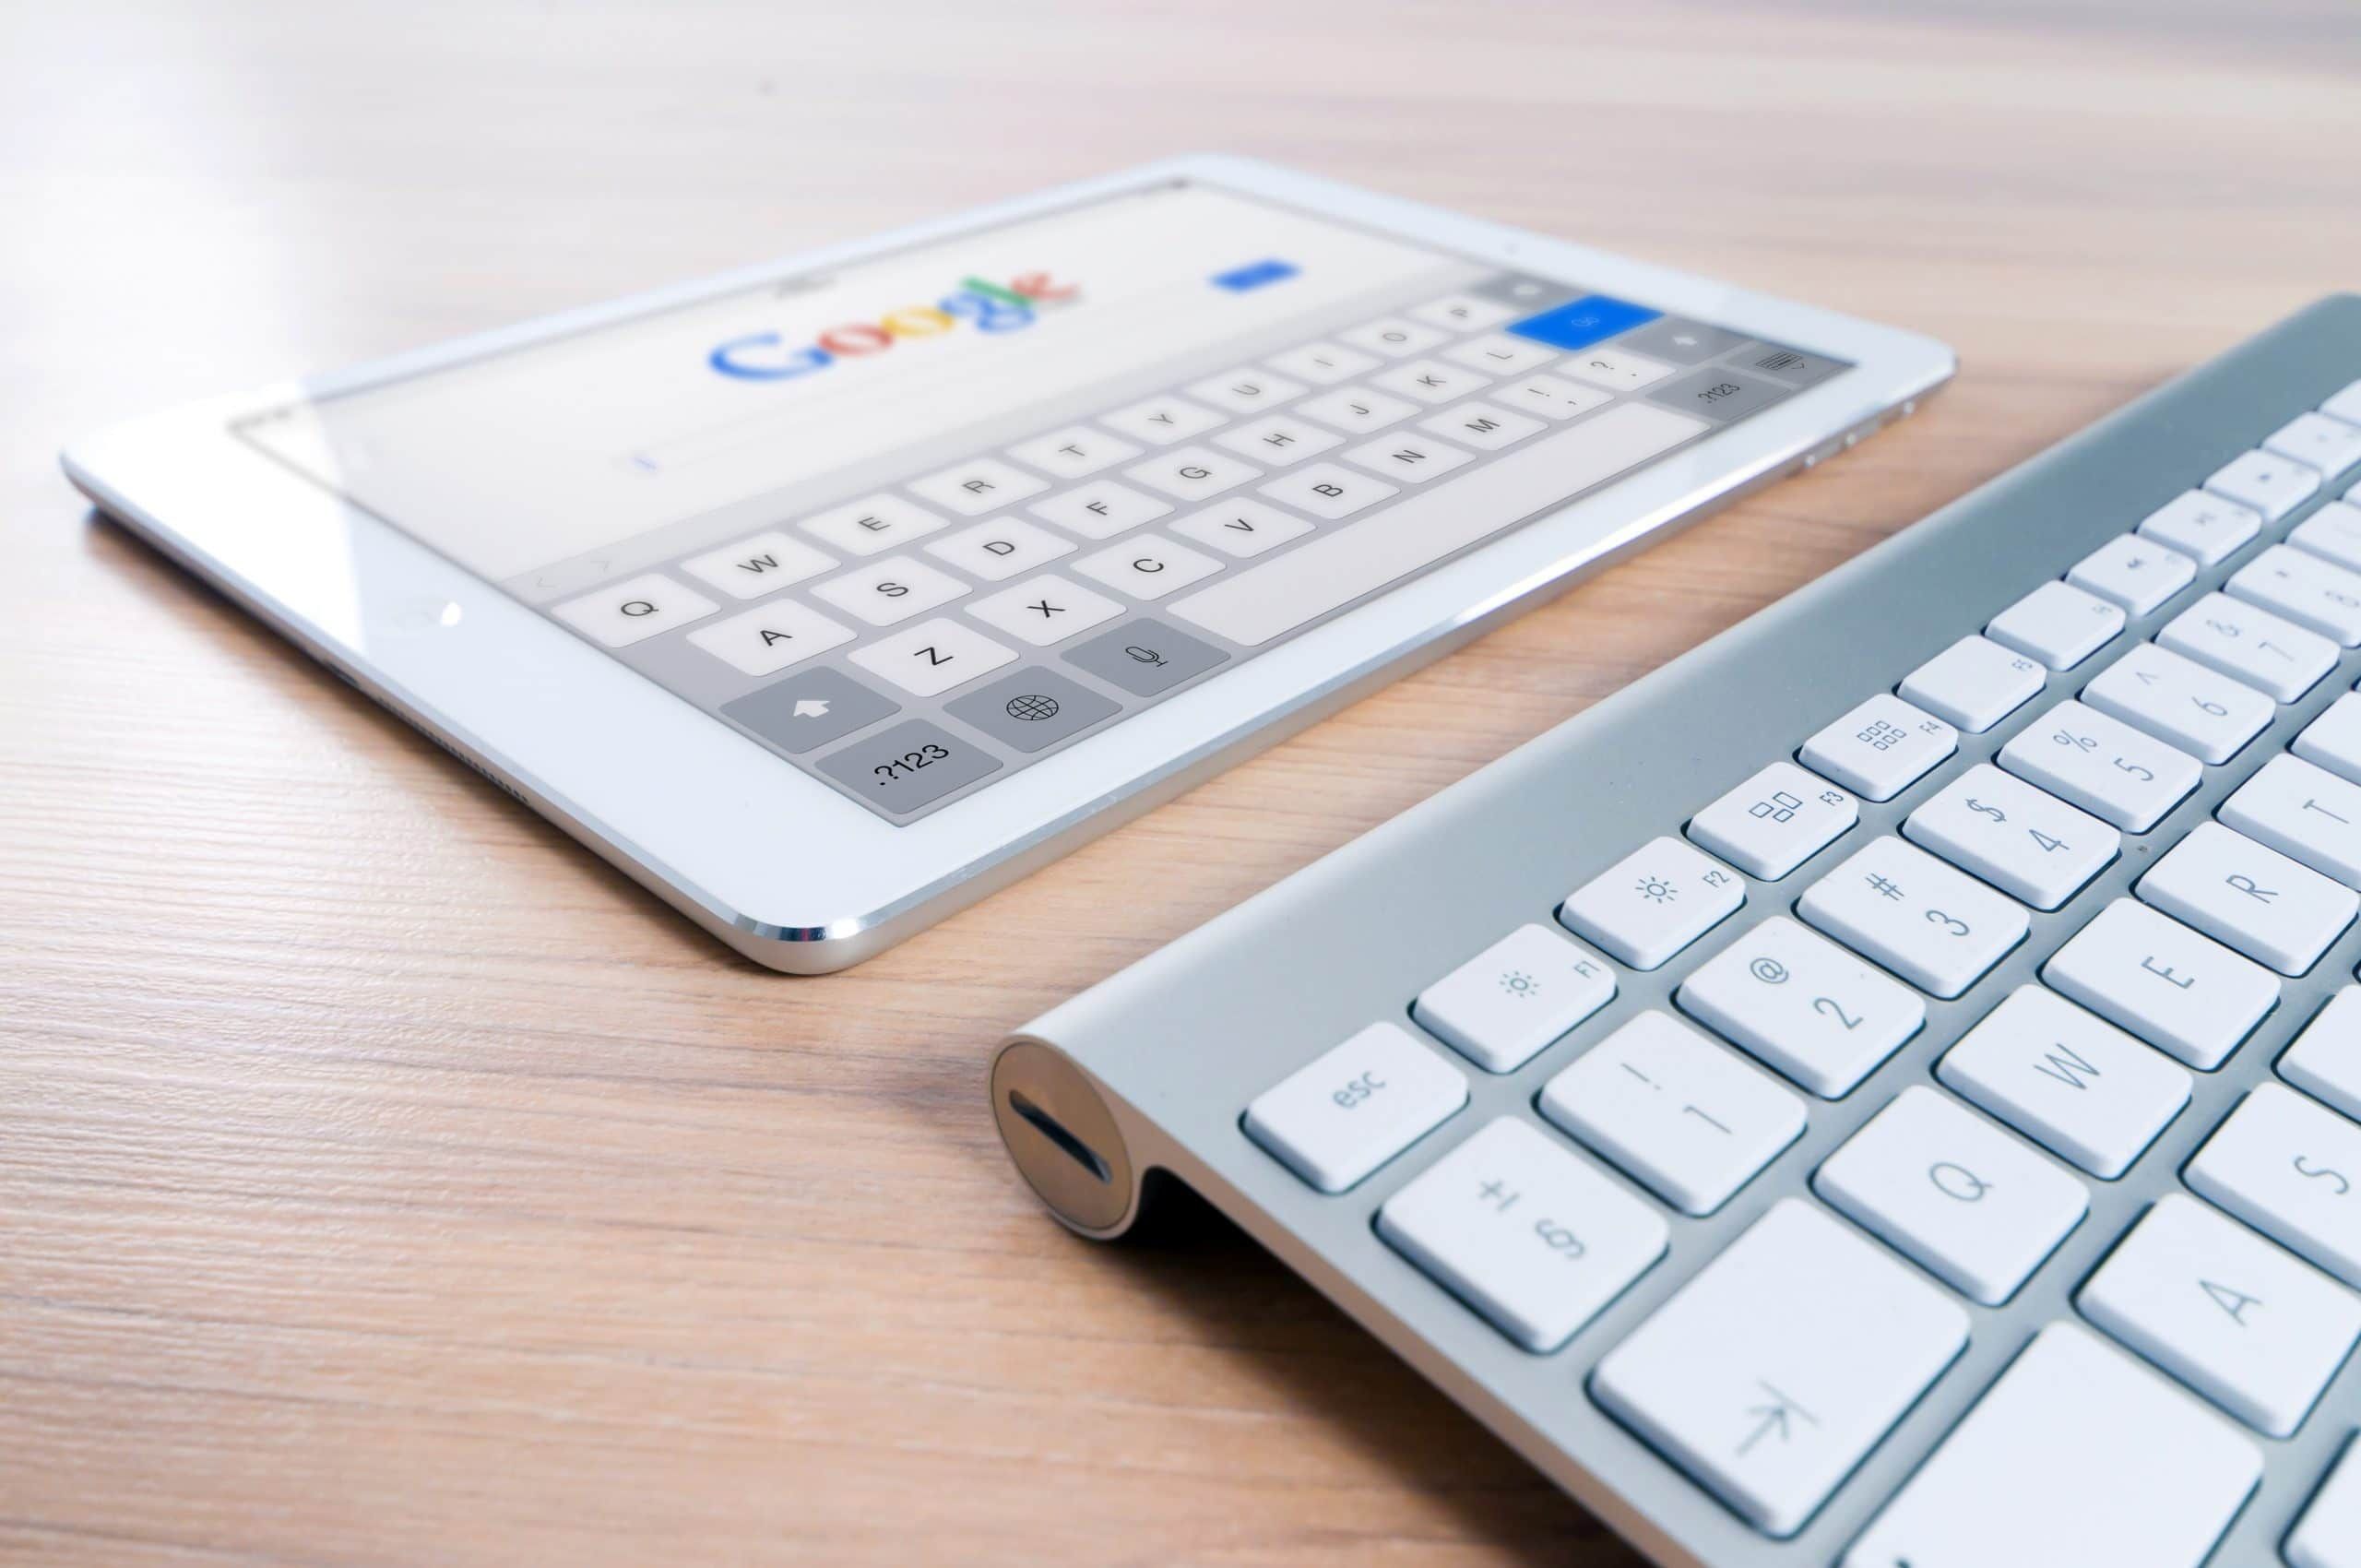 Tablet, open to Google home page, in front of a keyboard on a wood desk.